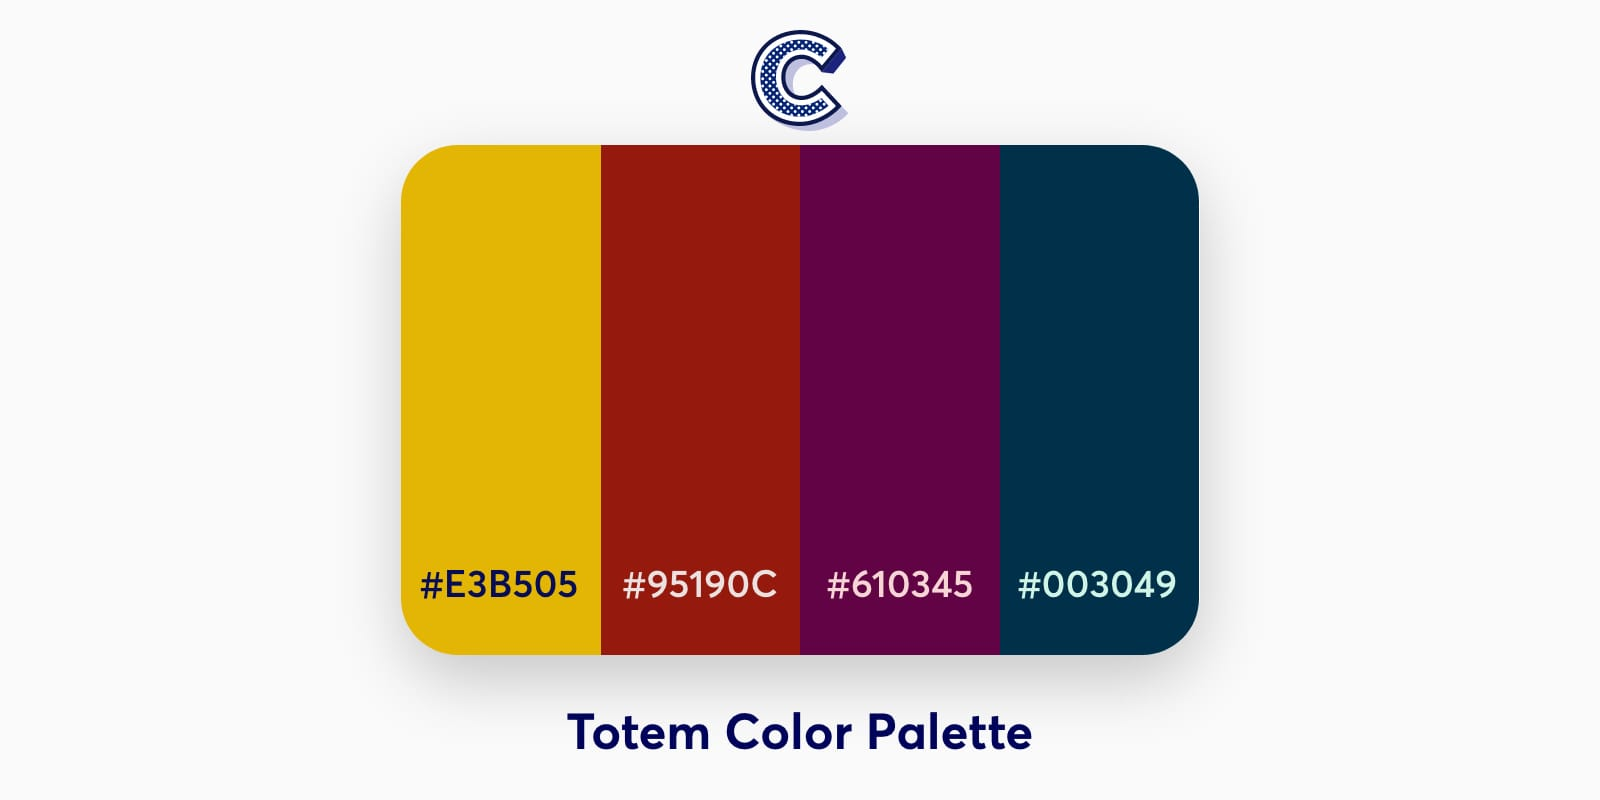 the featured image of totem color palette